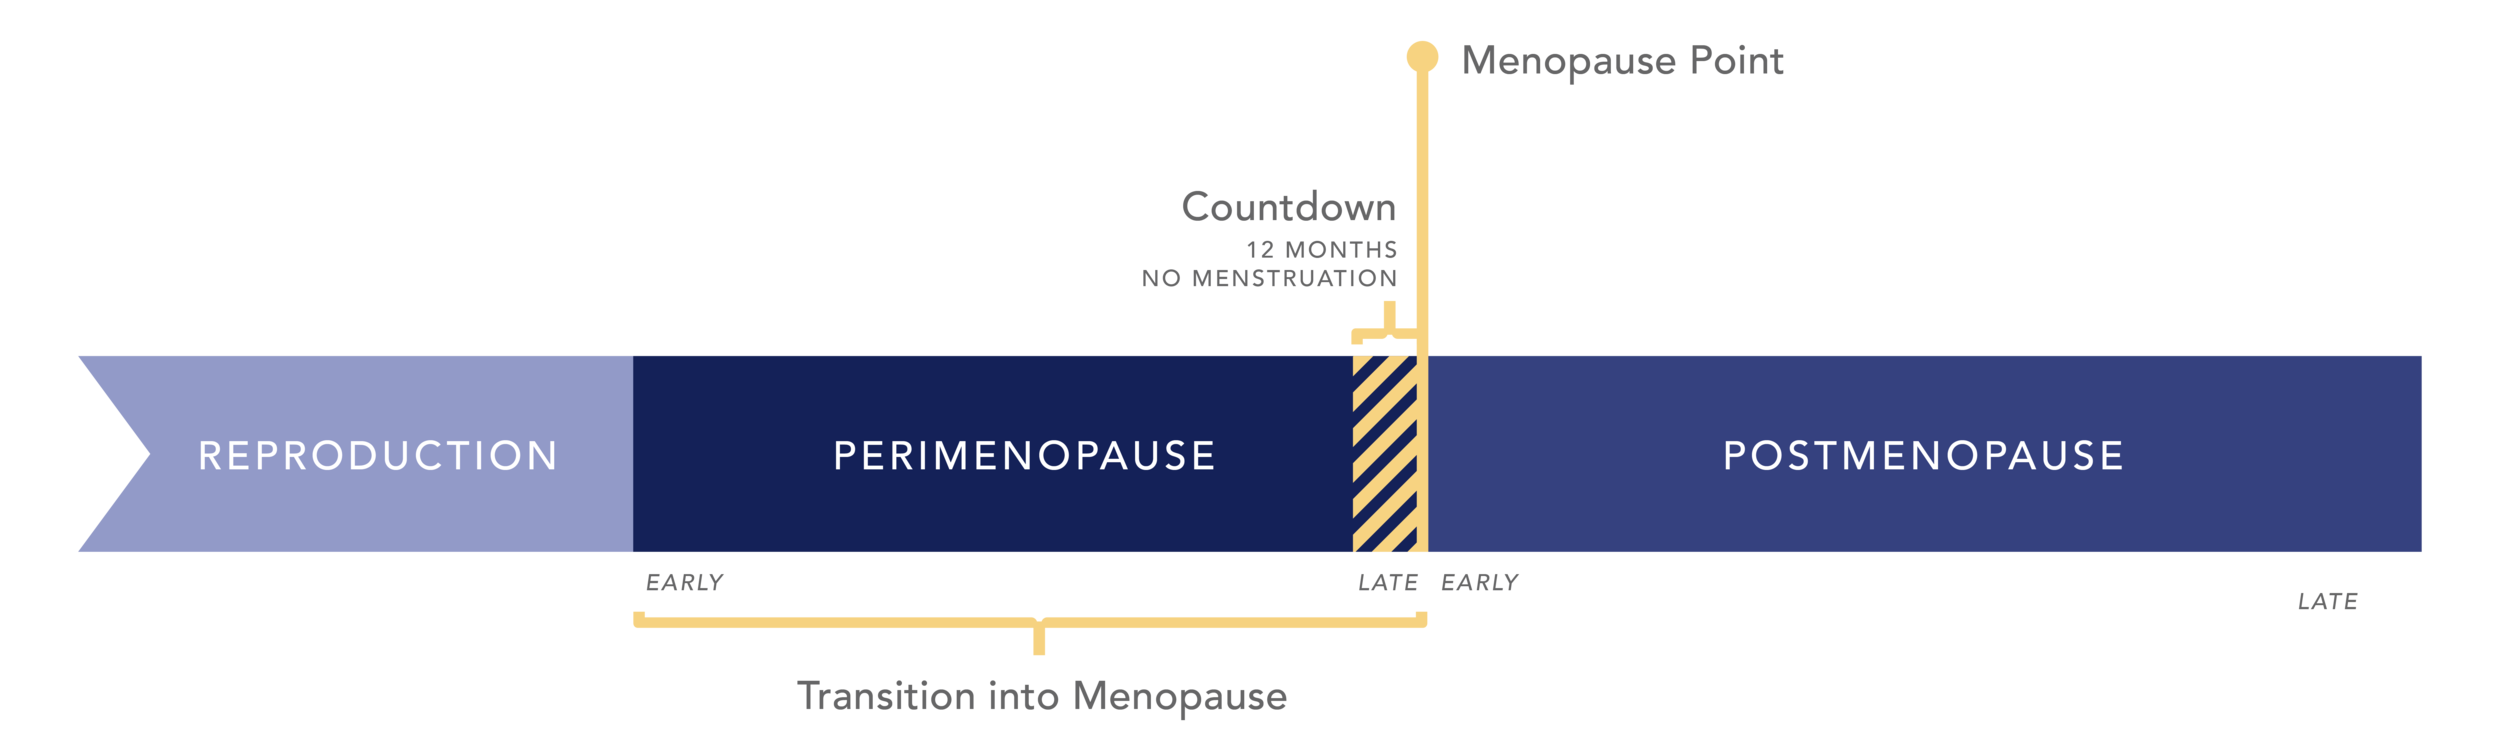 A graphical timeline of menopause